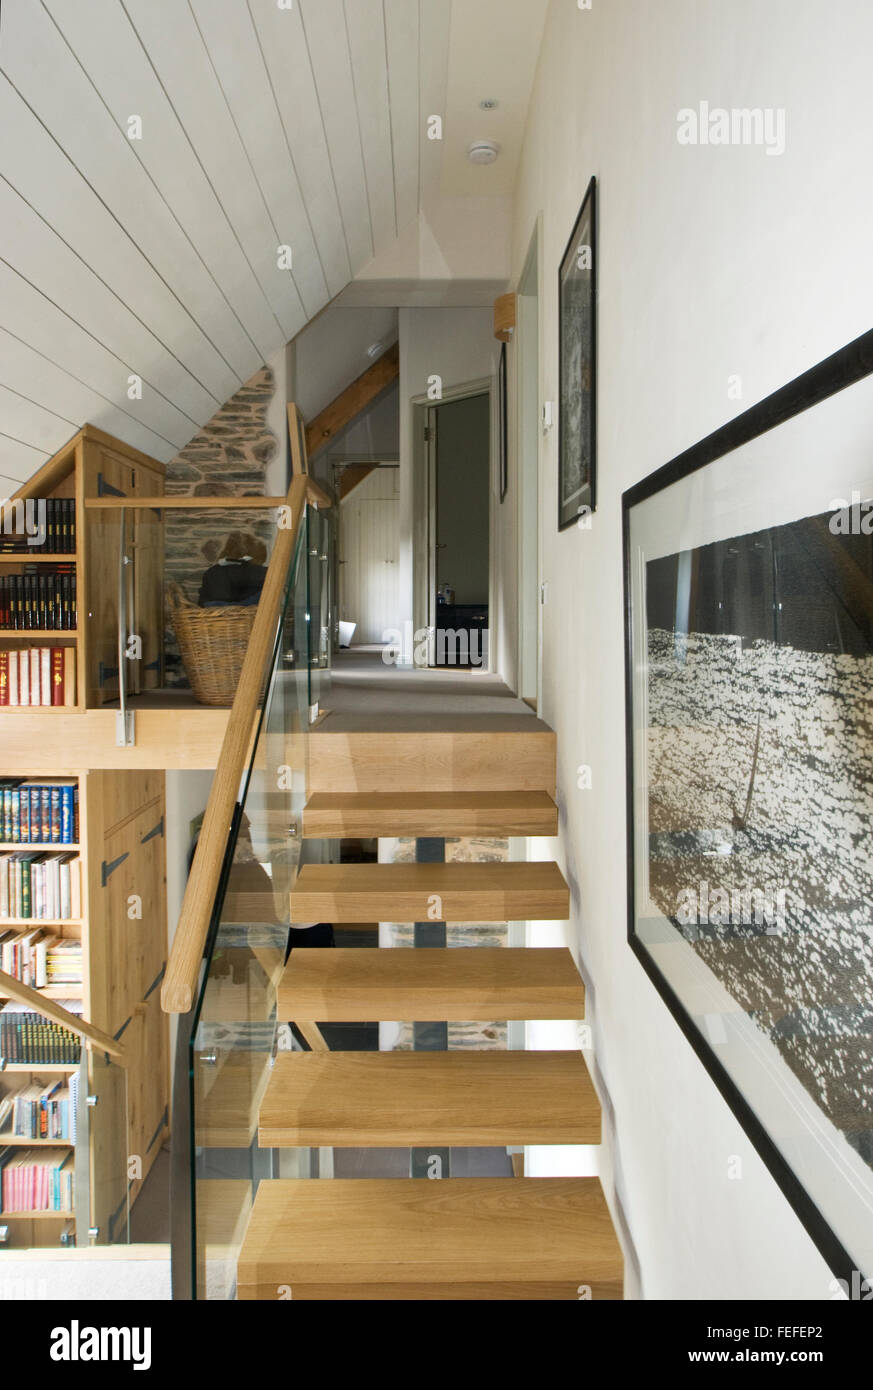 contemporary stairs in new barn conversion. - Stock Image